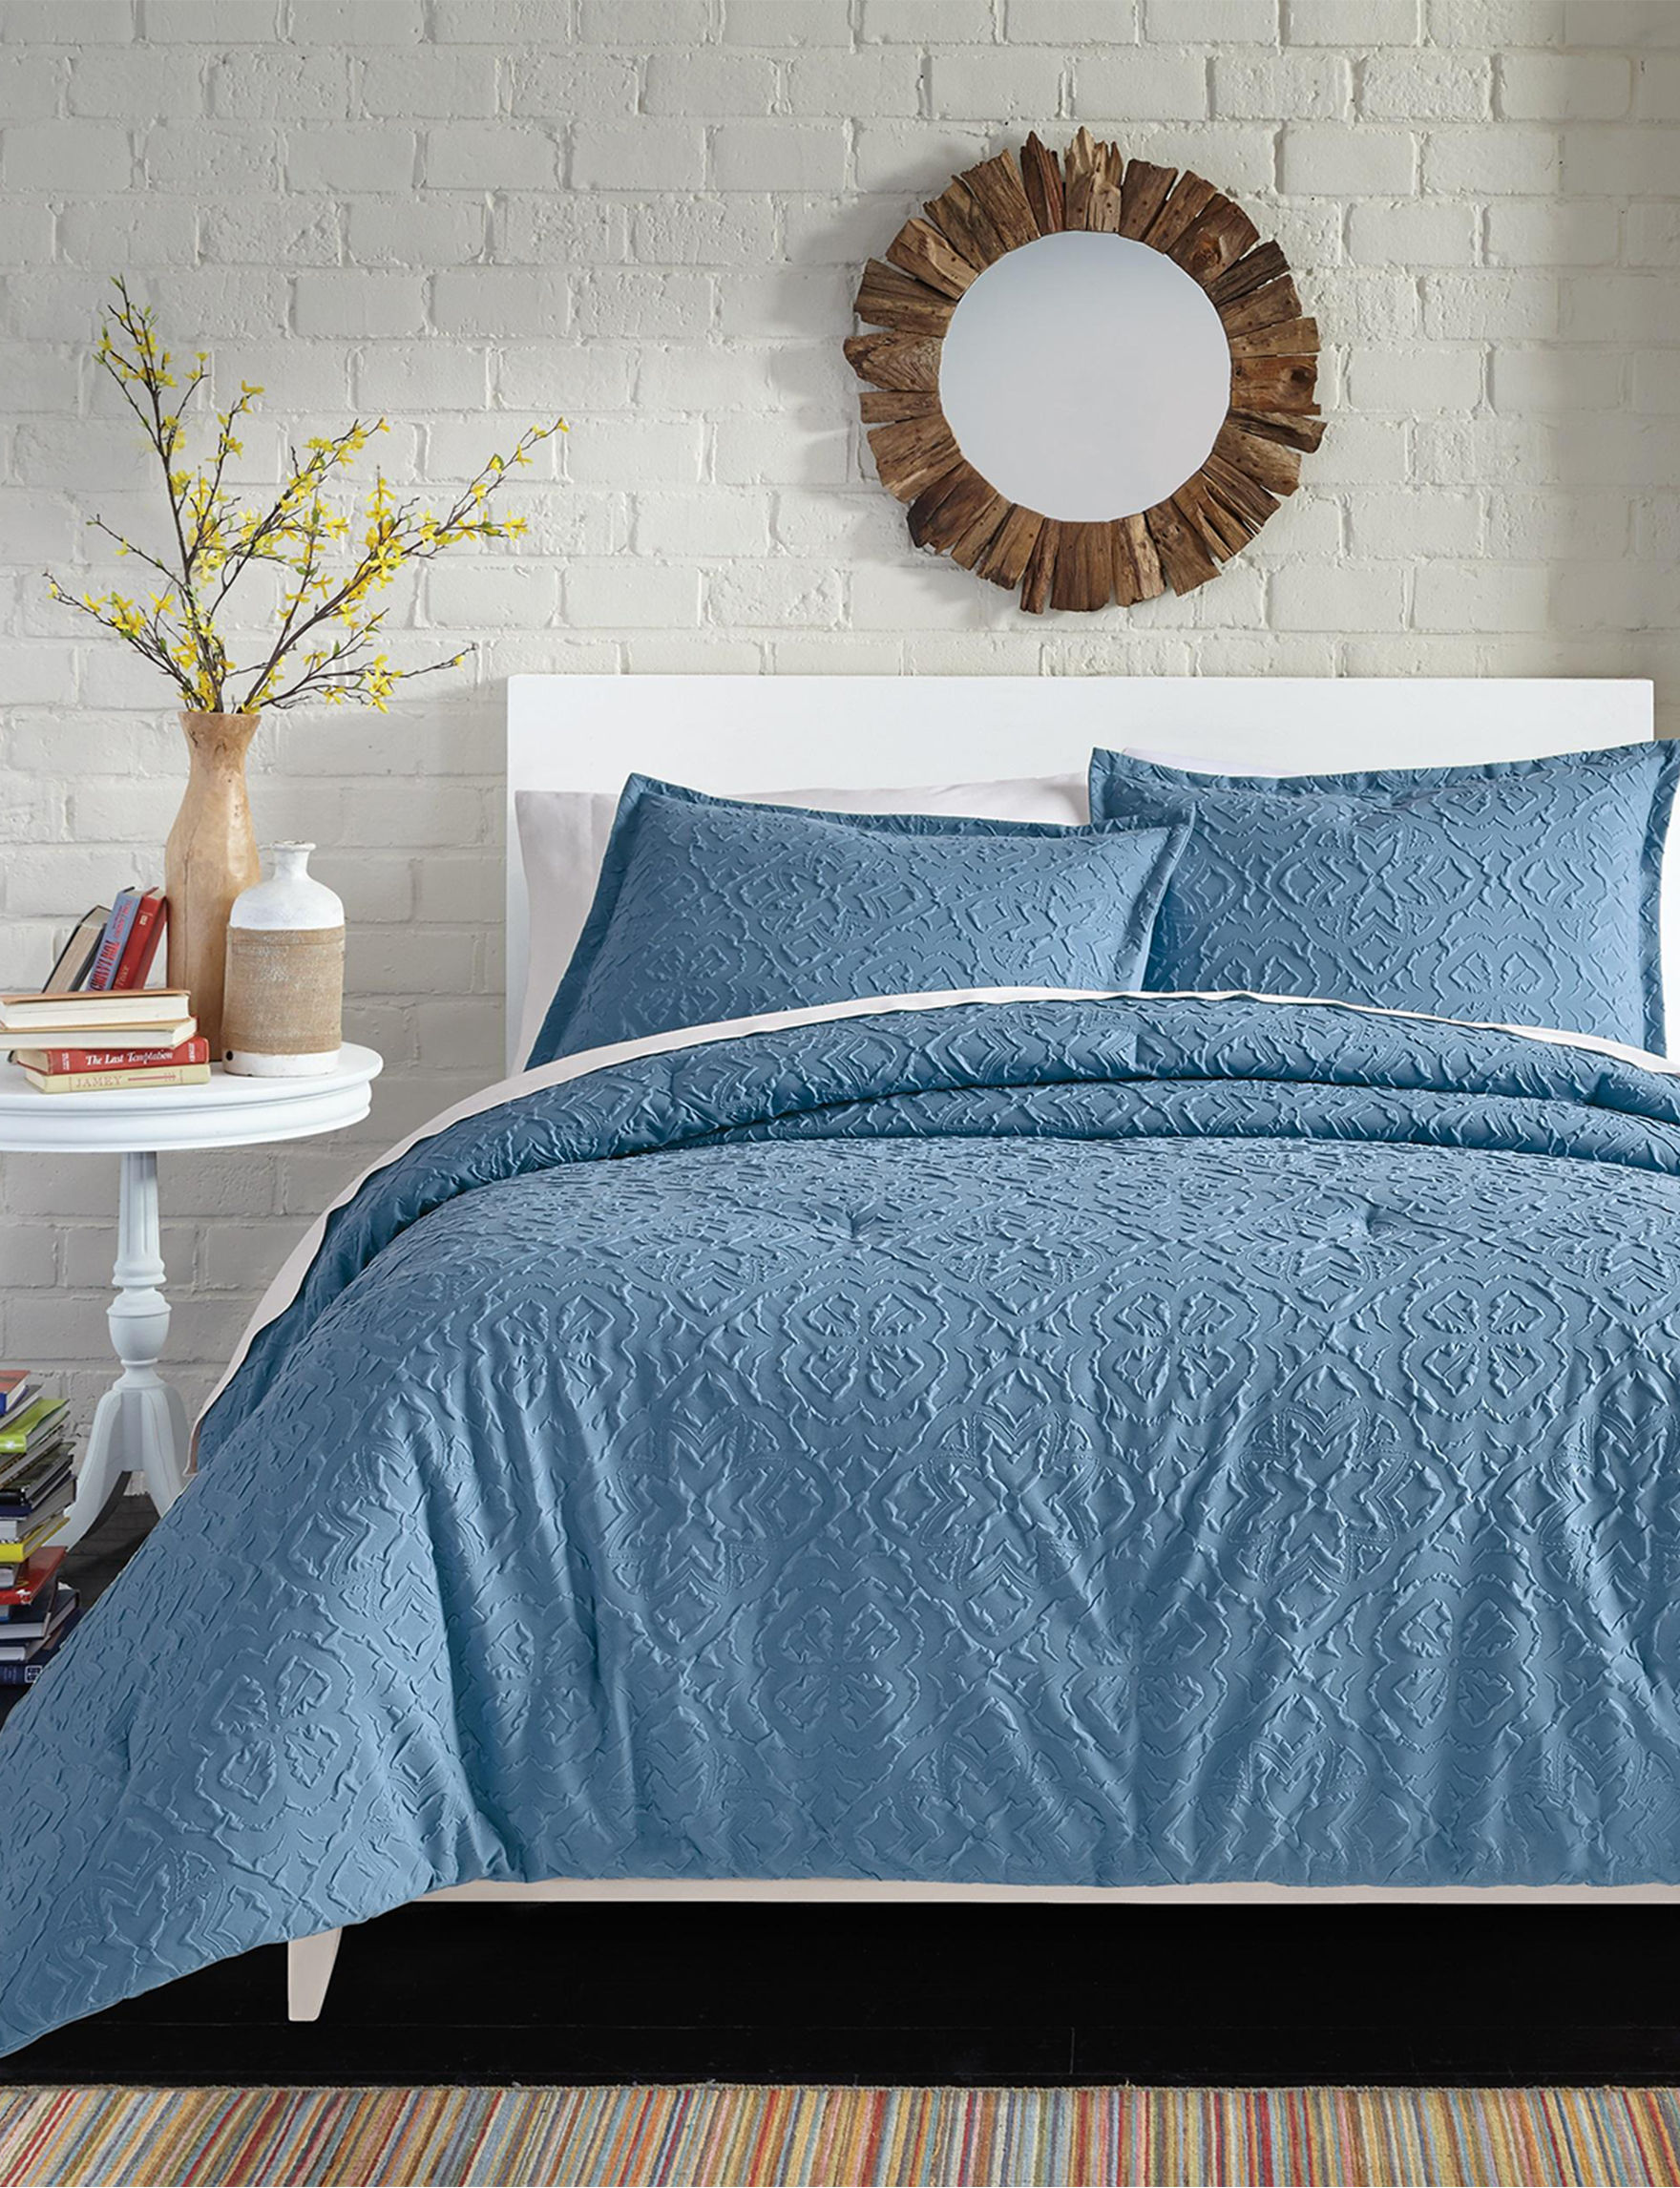 Great Hotels Collection Blue Comforters & Comforter Sets